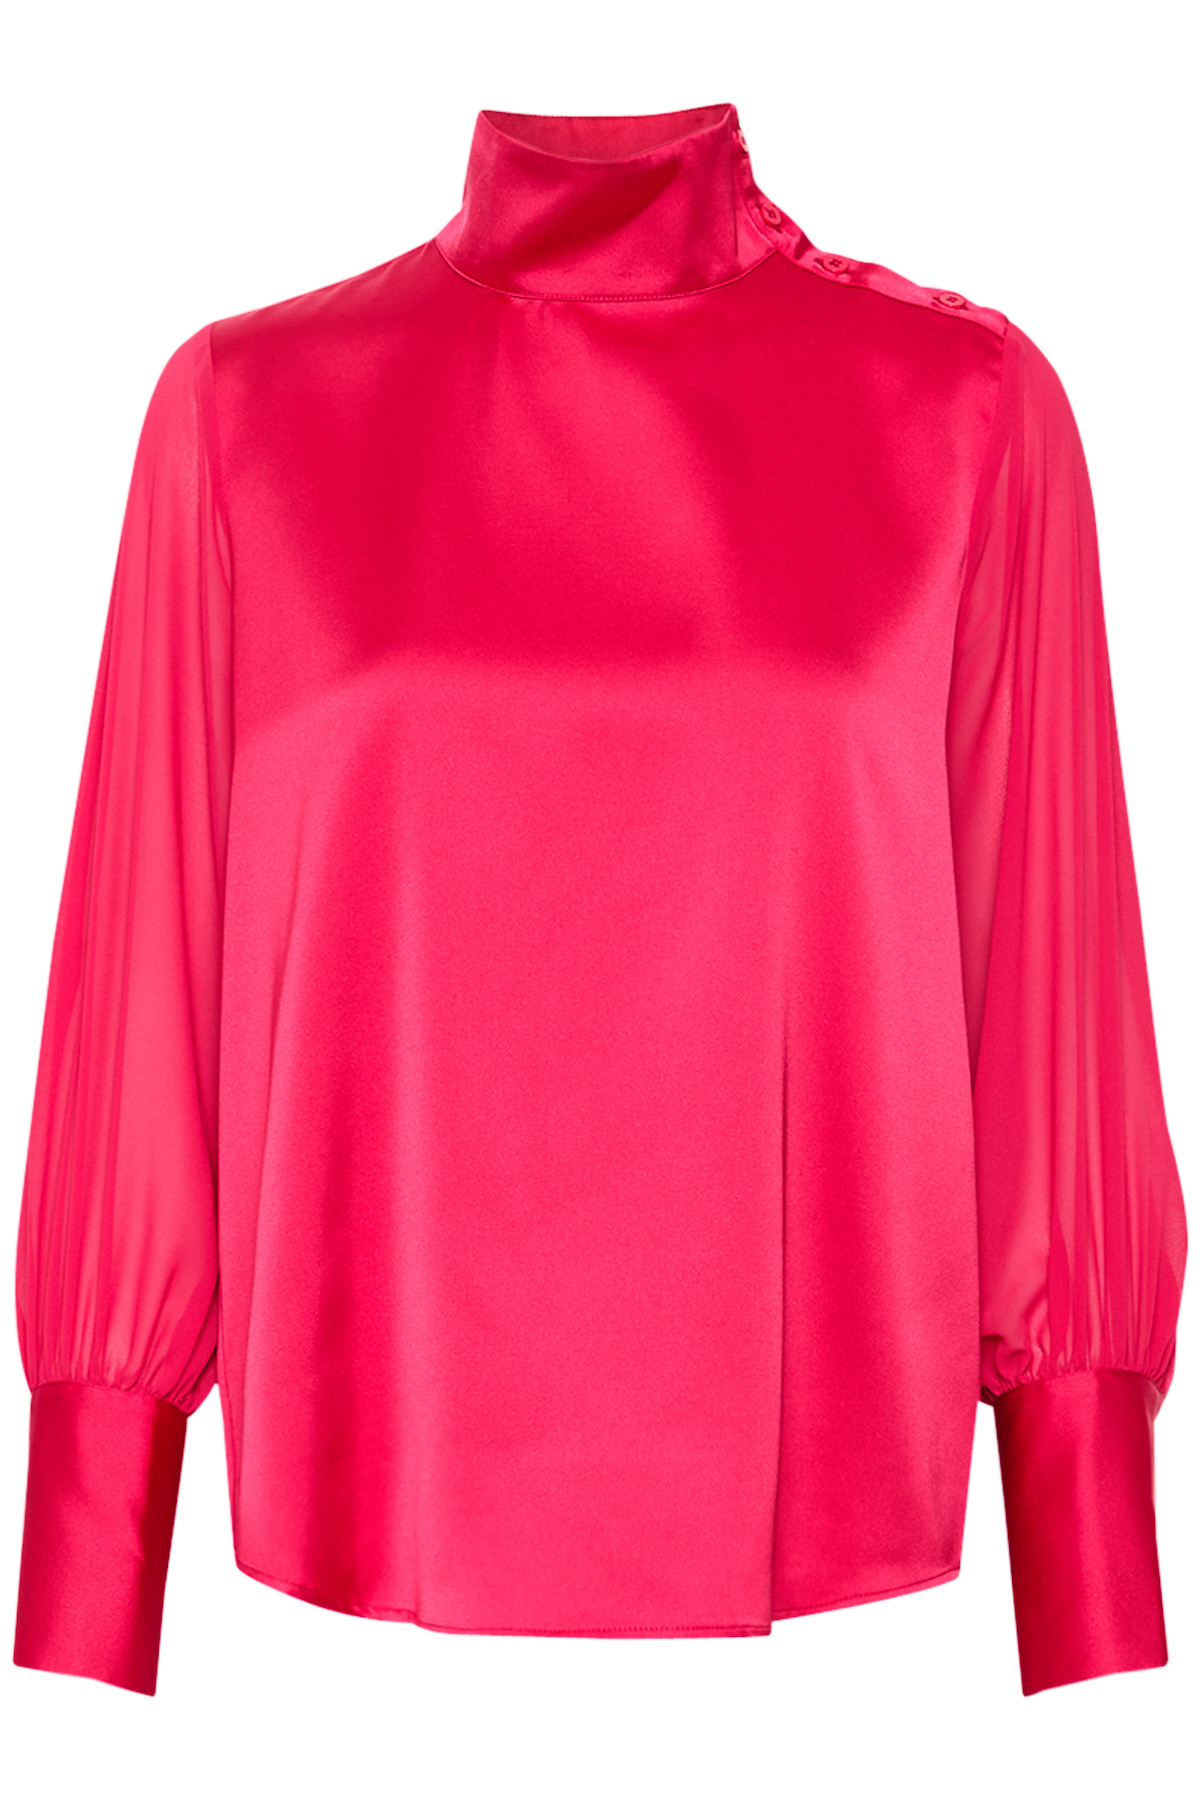 Ortovox 150 Cool Clean T shirt Dame hot coral